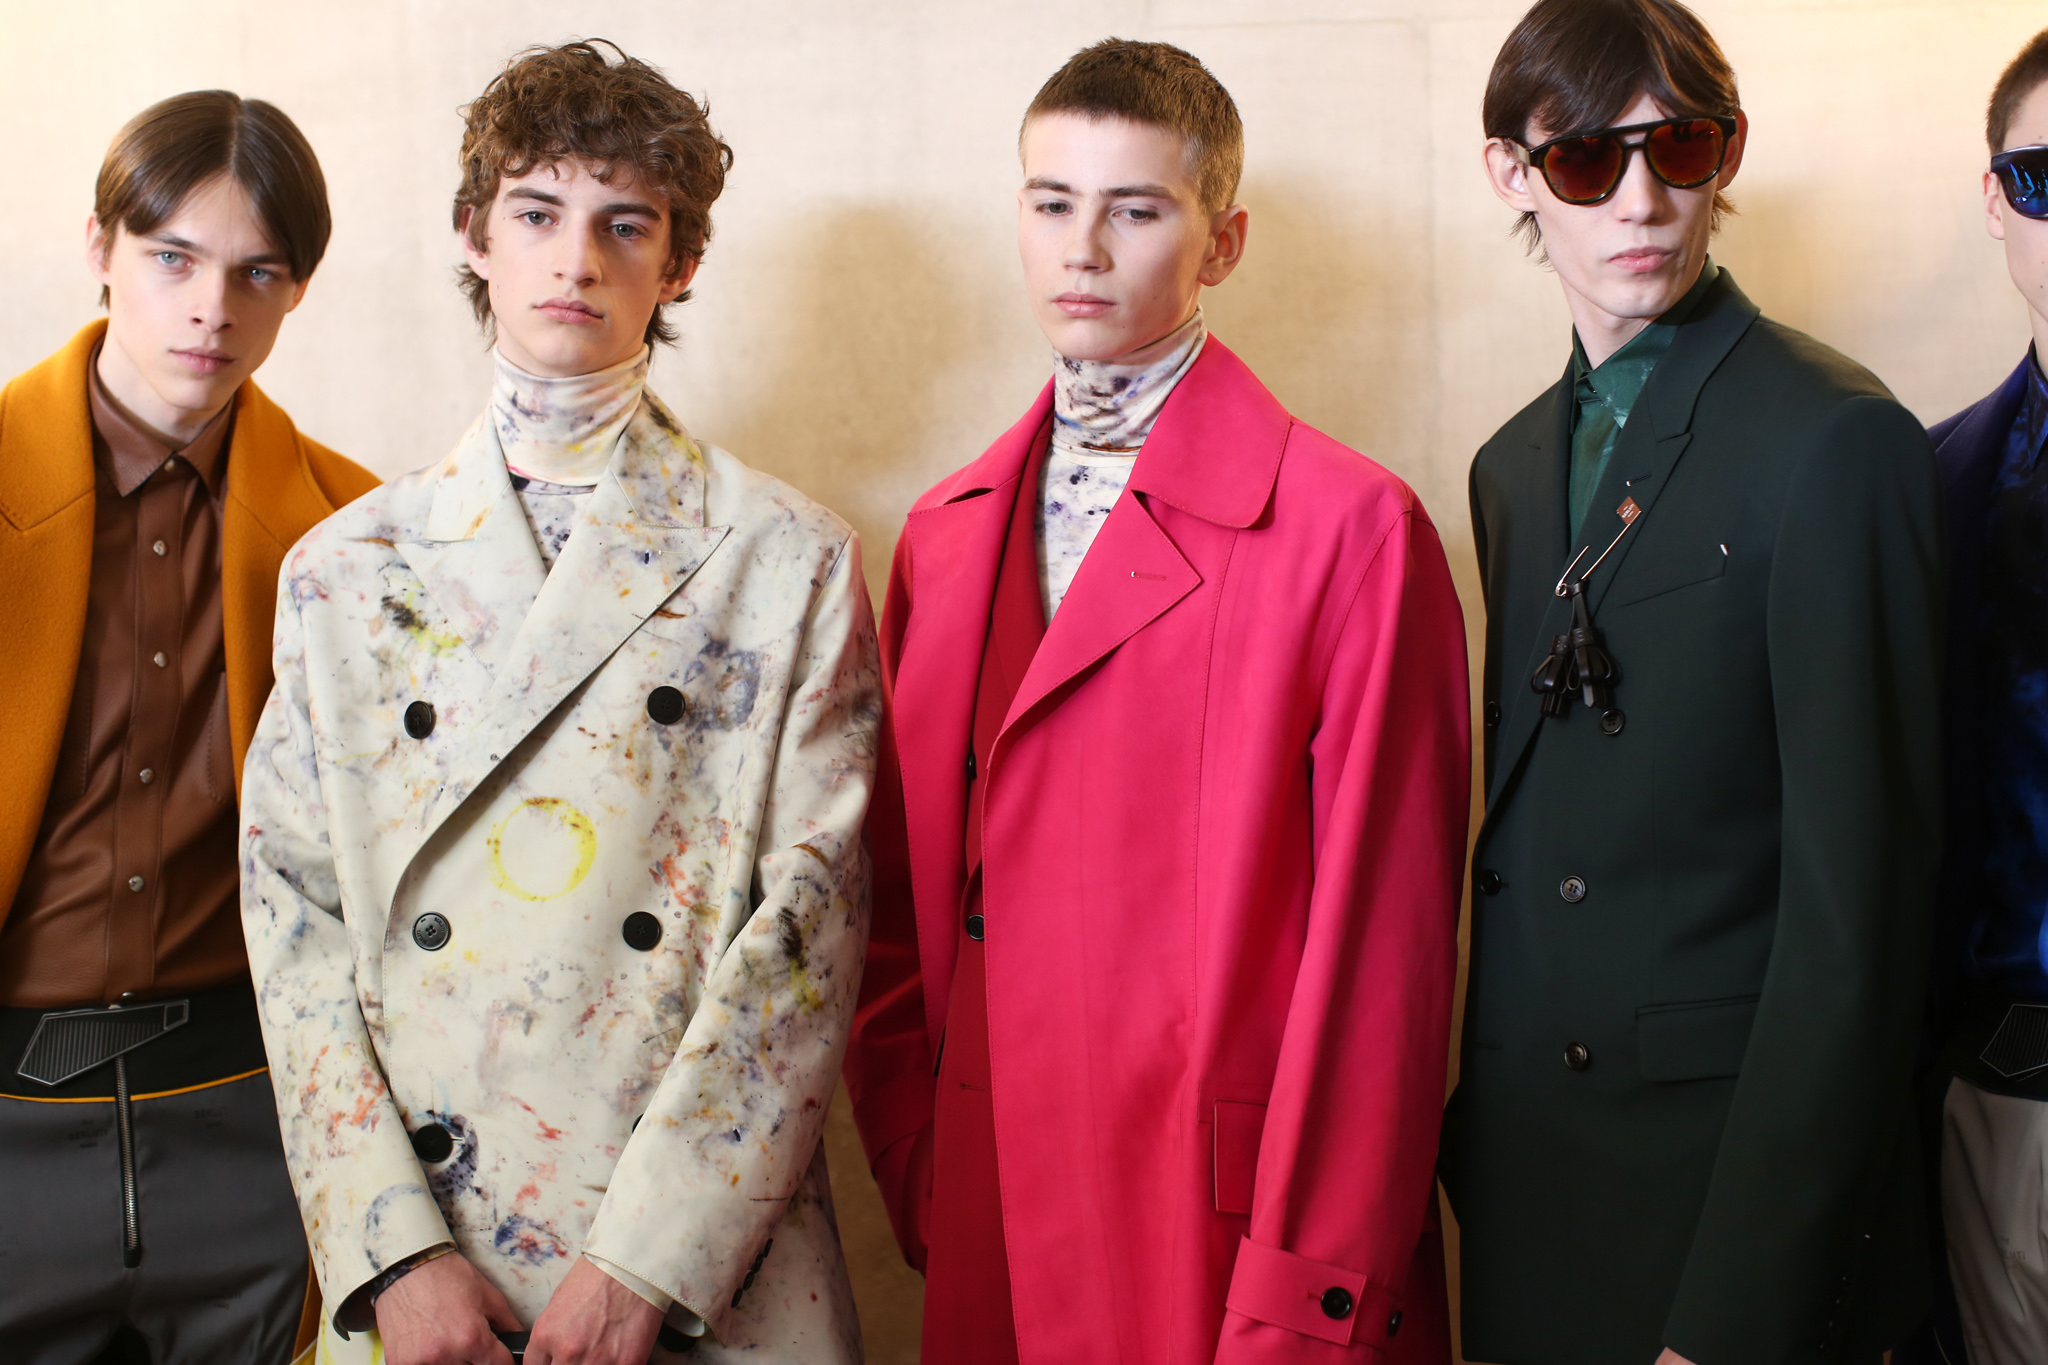 Backstage at Berluti men's fall 2019